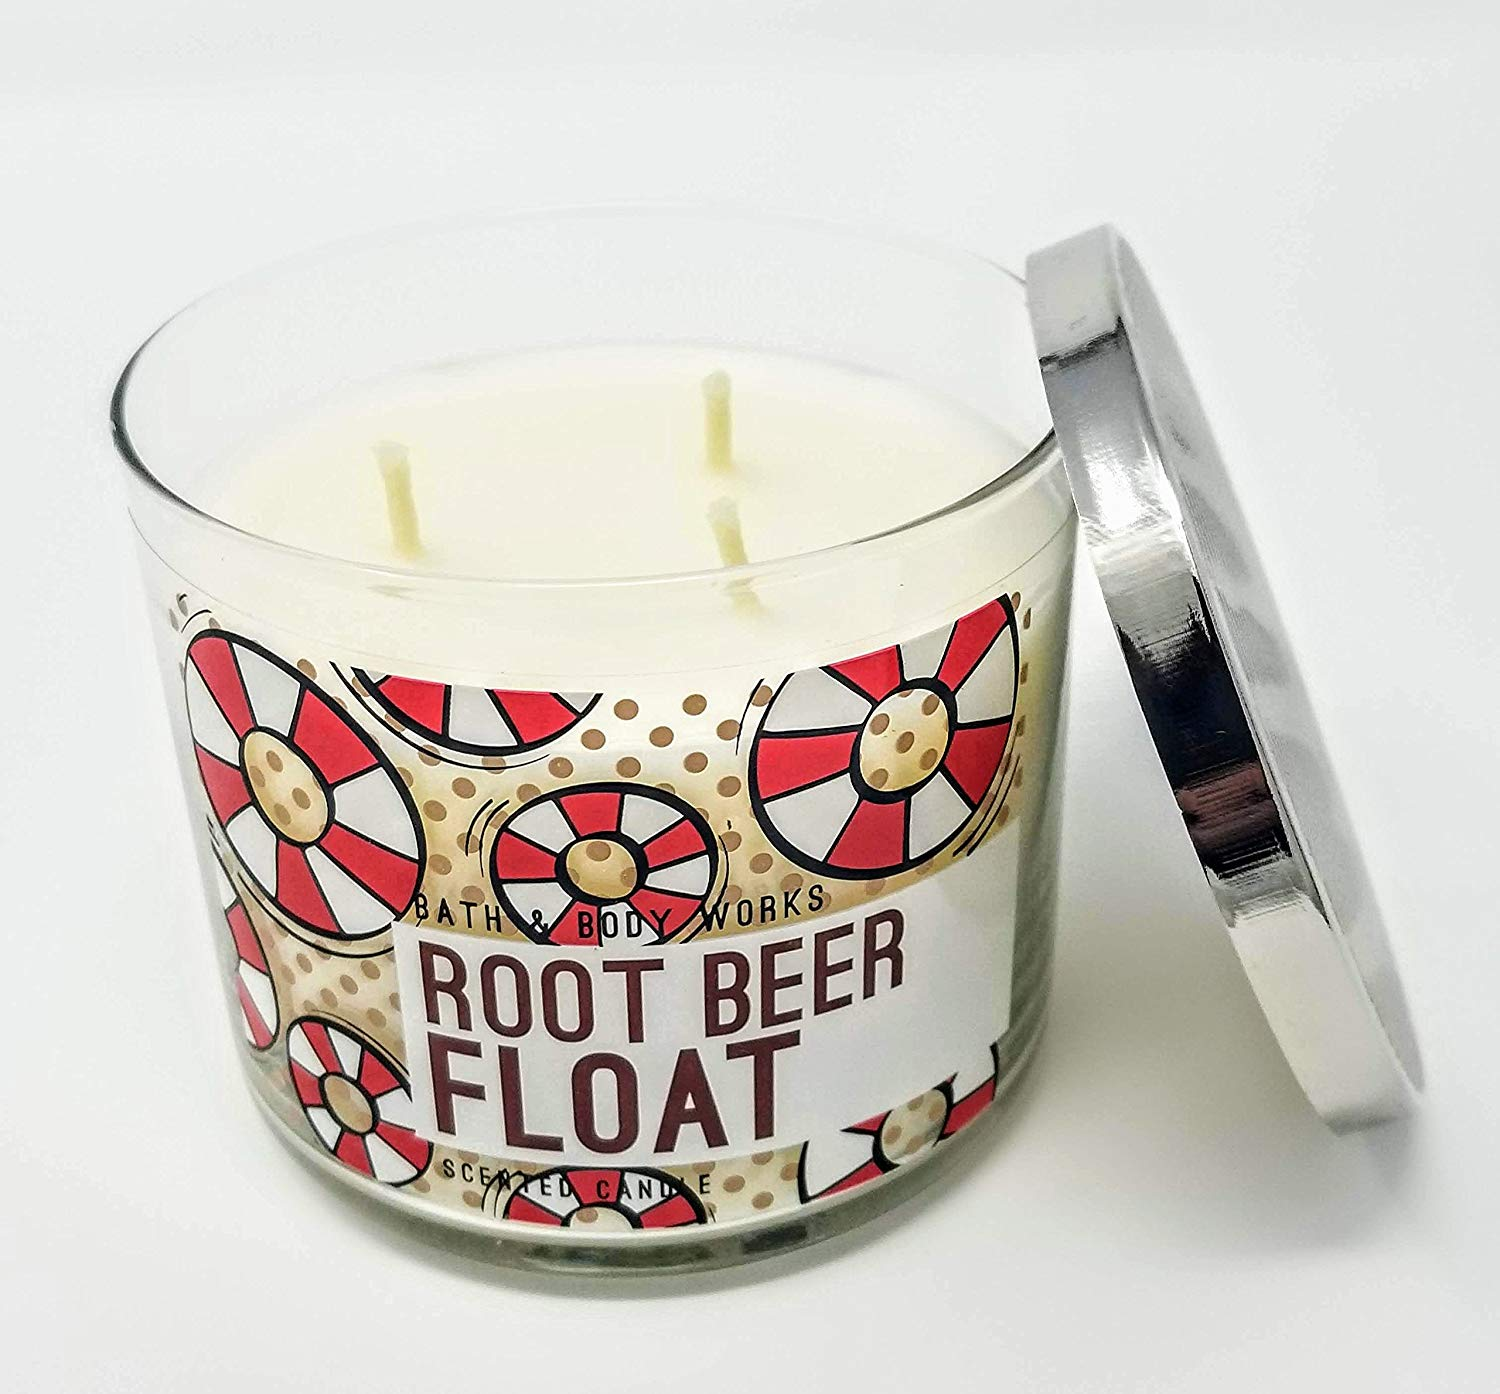 Bath & Body Works Root Beer Float Scented Candle